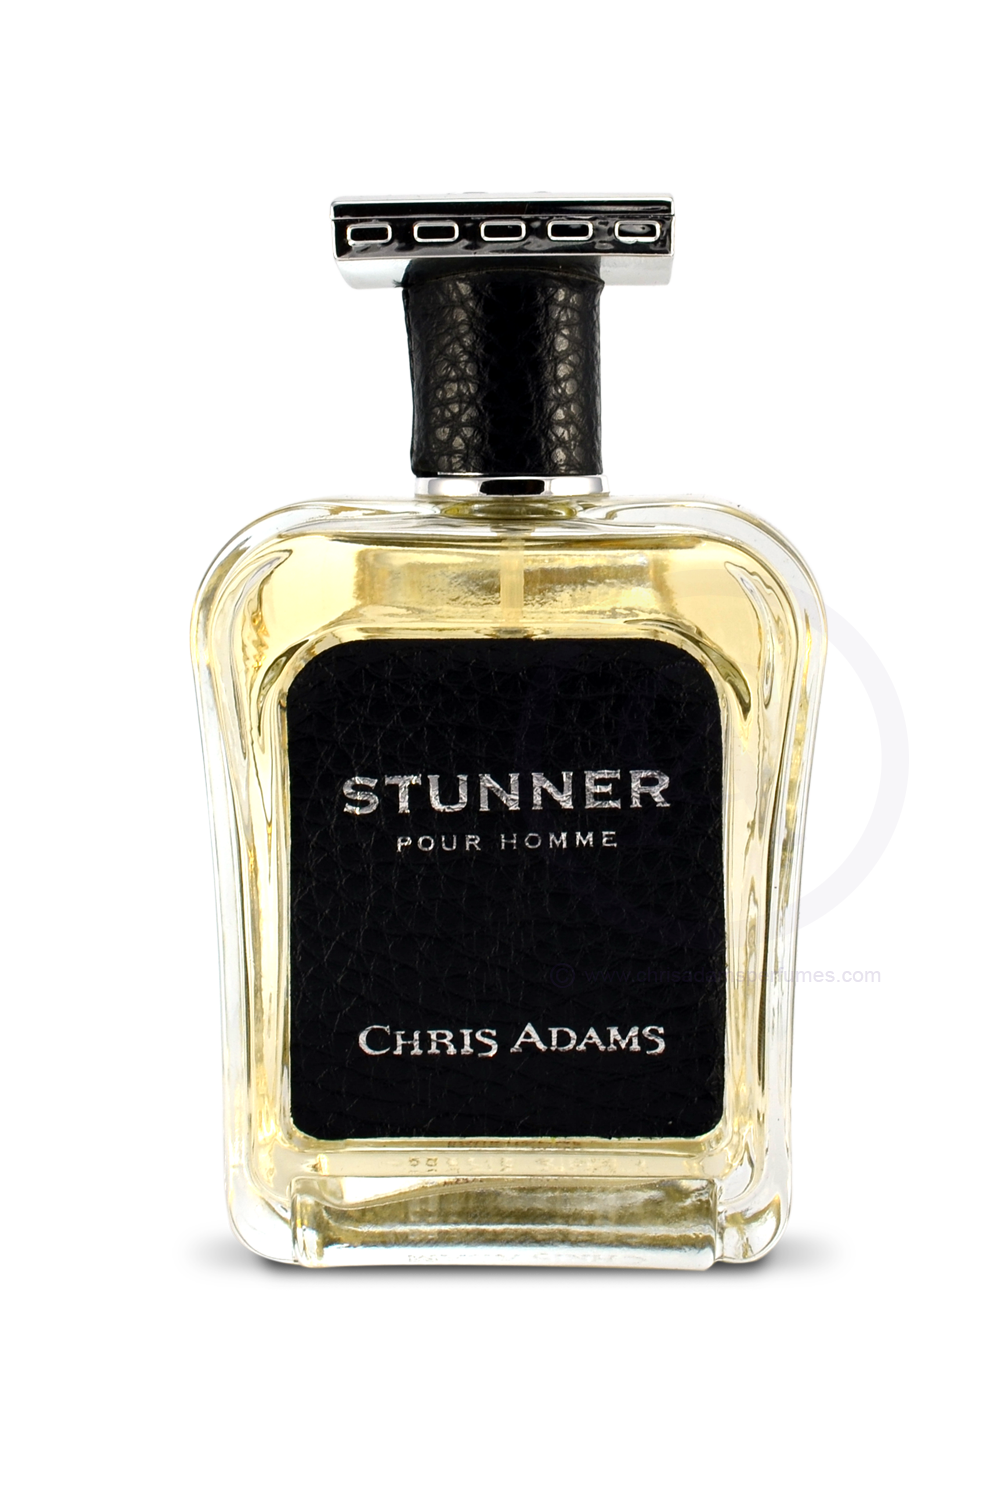 Cologne bottle png. Stunner pour homme perfume